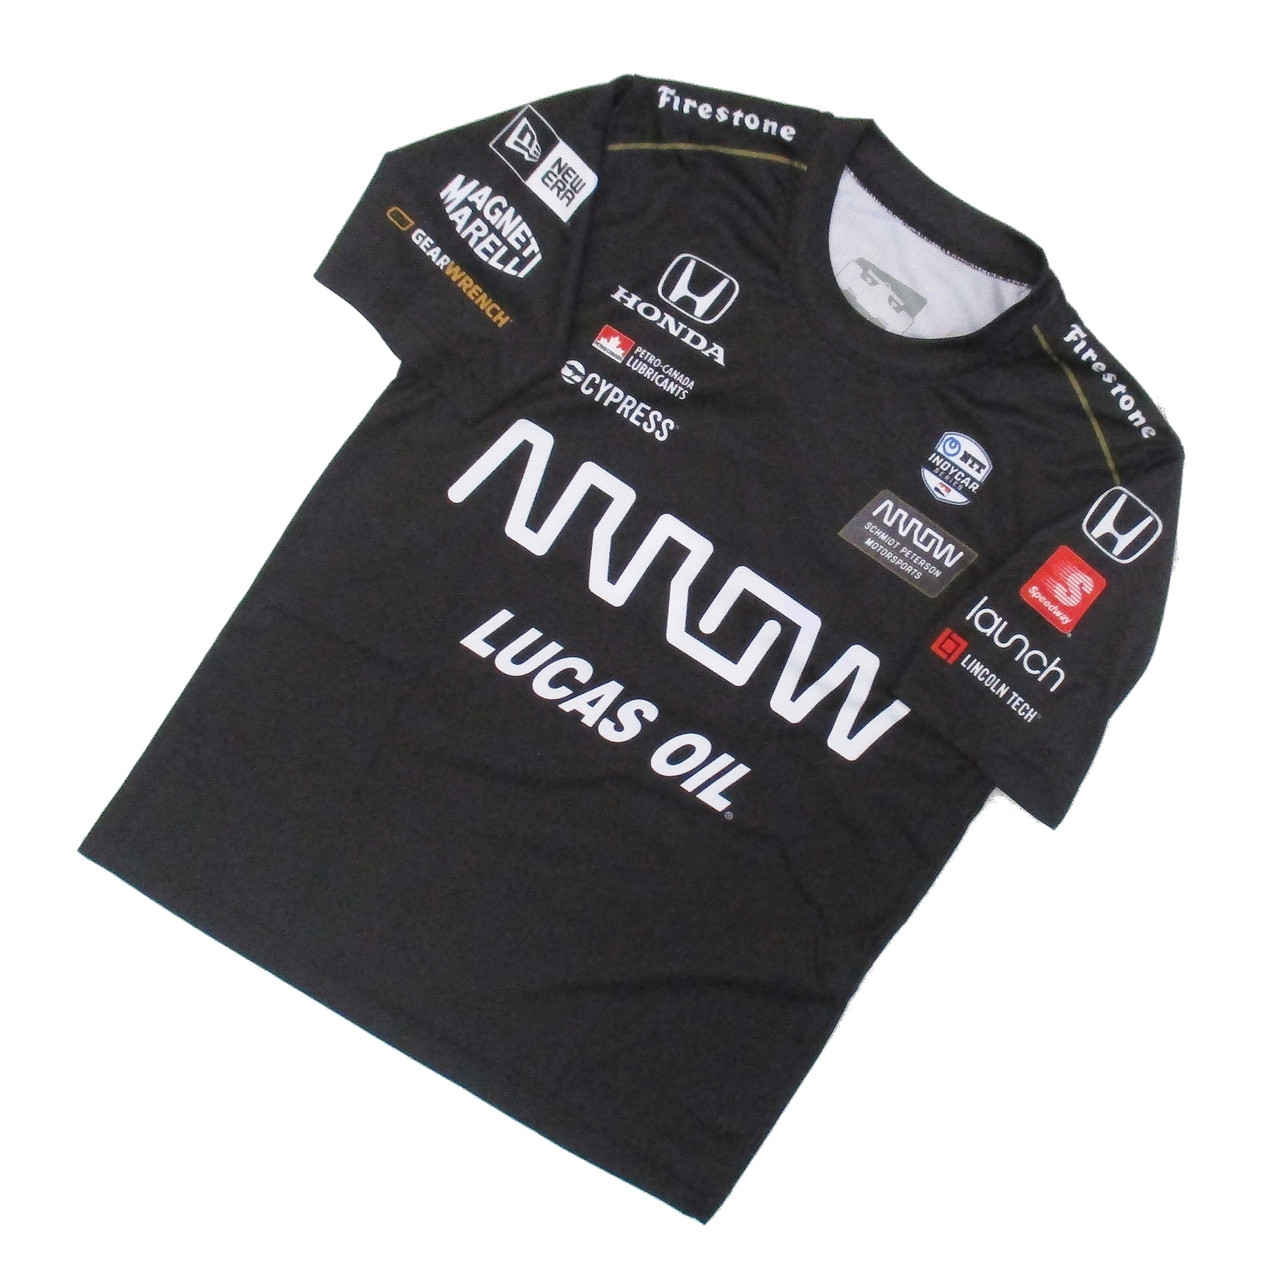 0f011fd0 Youth 2019 James Hinchcliffe Driver Jersey - Indianapolis Motor ...